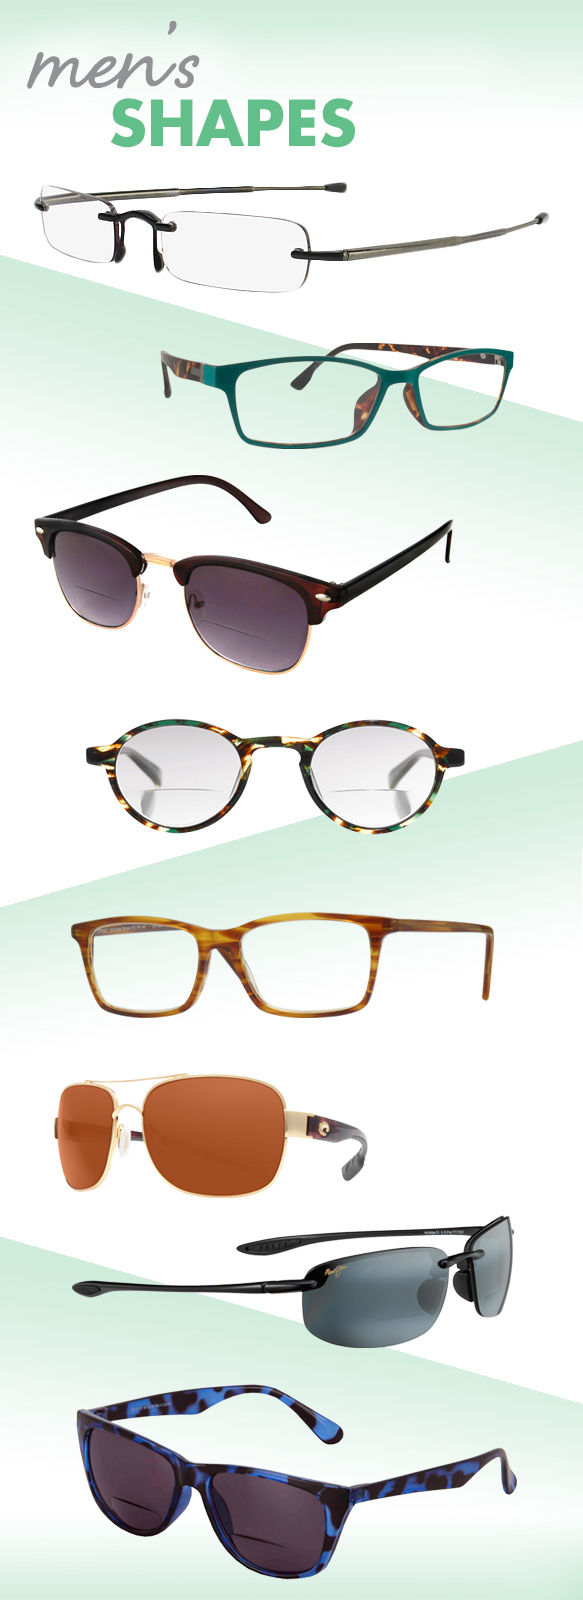 Calvin Klein Collection (CKCR1E Readers), Cinzia (Focus), Desert Sunglass of Scottsdale (SR18273), eyebobs (Board Stiff), INvue (Anchorage), Costa Sunglasses C-Mates (Cocos), Maui Jim (Ho'Okipa), I Heart Eyewear (Charlie)